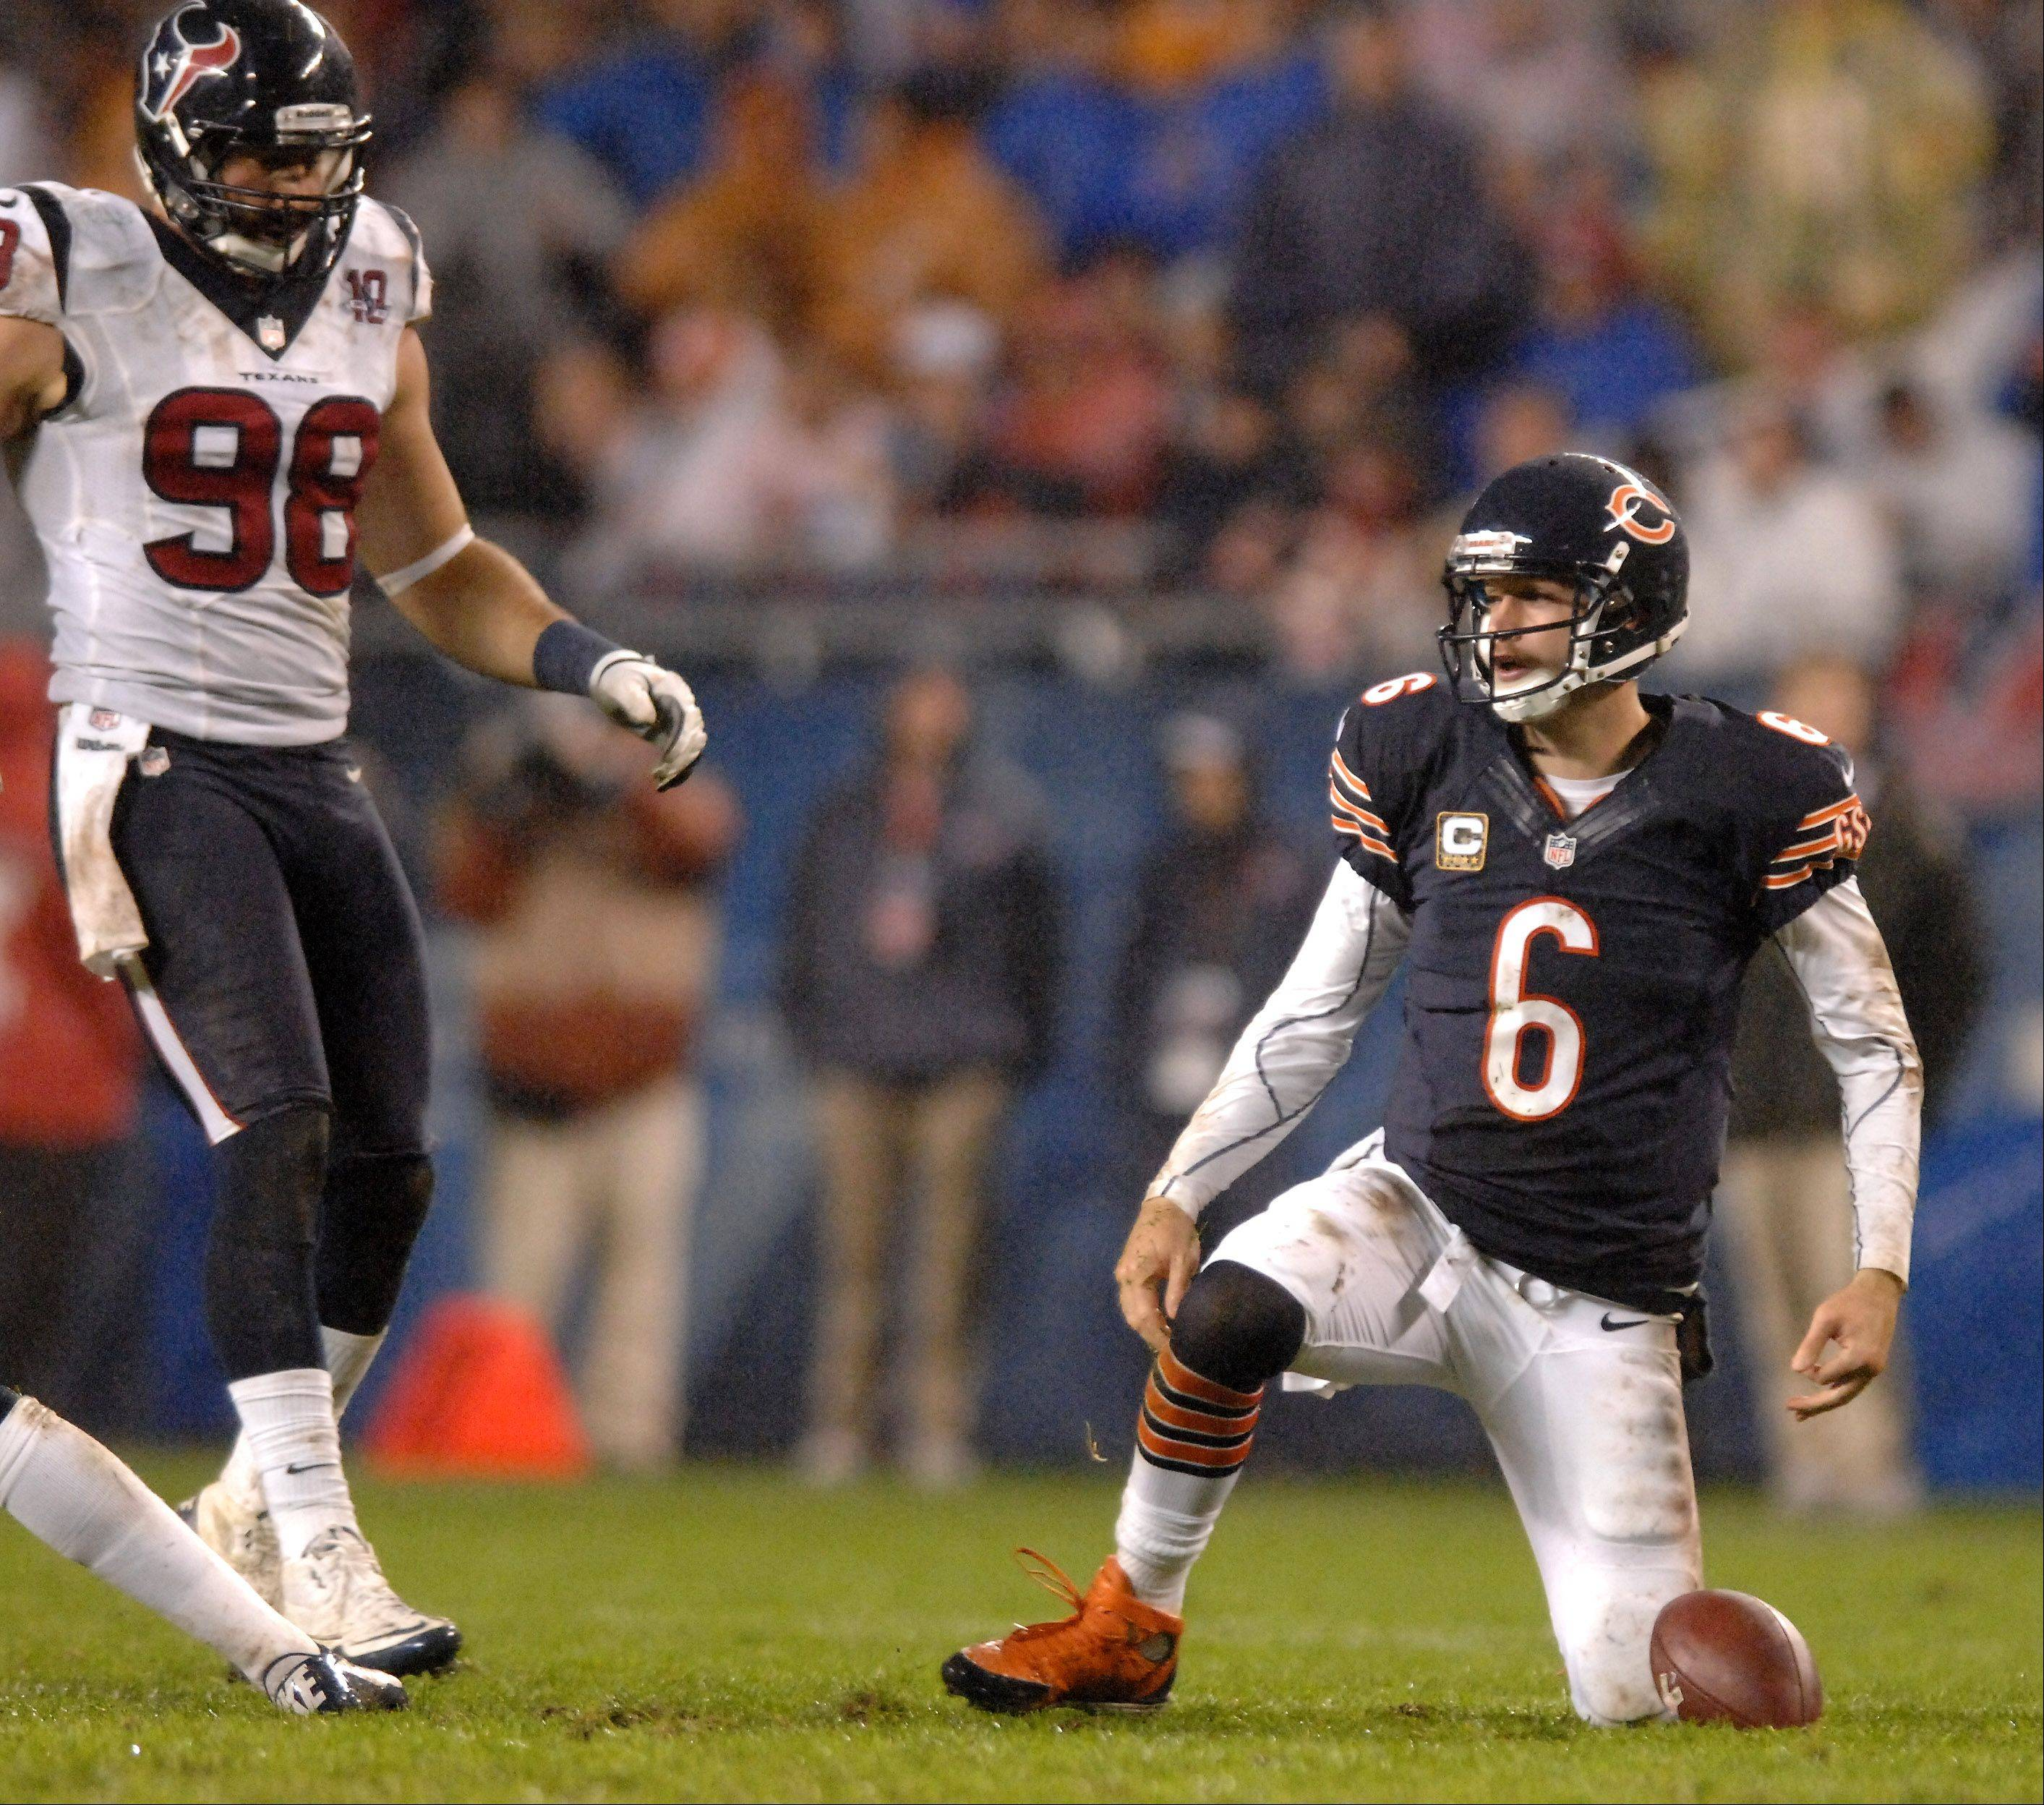 Chicago Bears quarterback Jay Cutler (6) gets up after a second quarter hit that may have resulted in a concussion. Cutler did not return to the game in the second half.